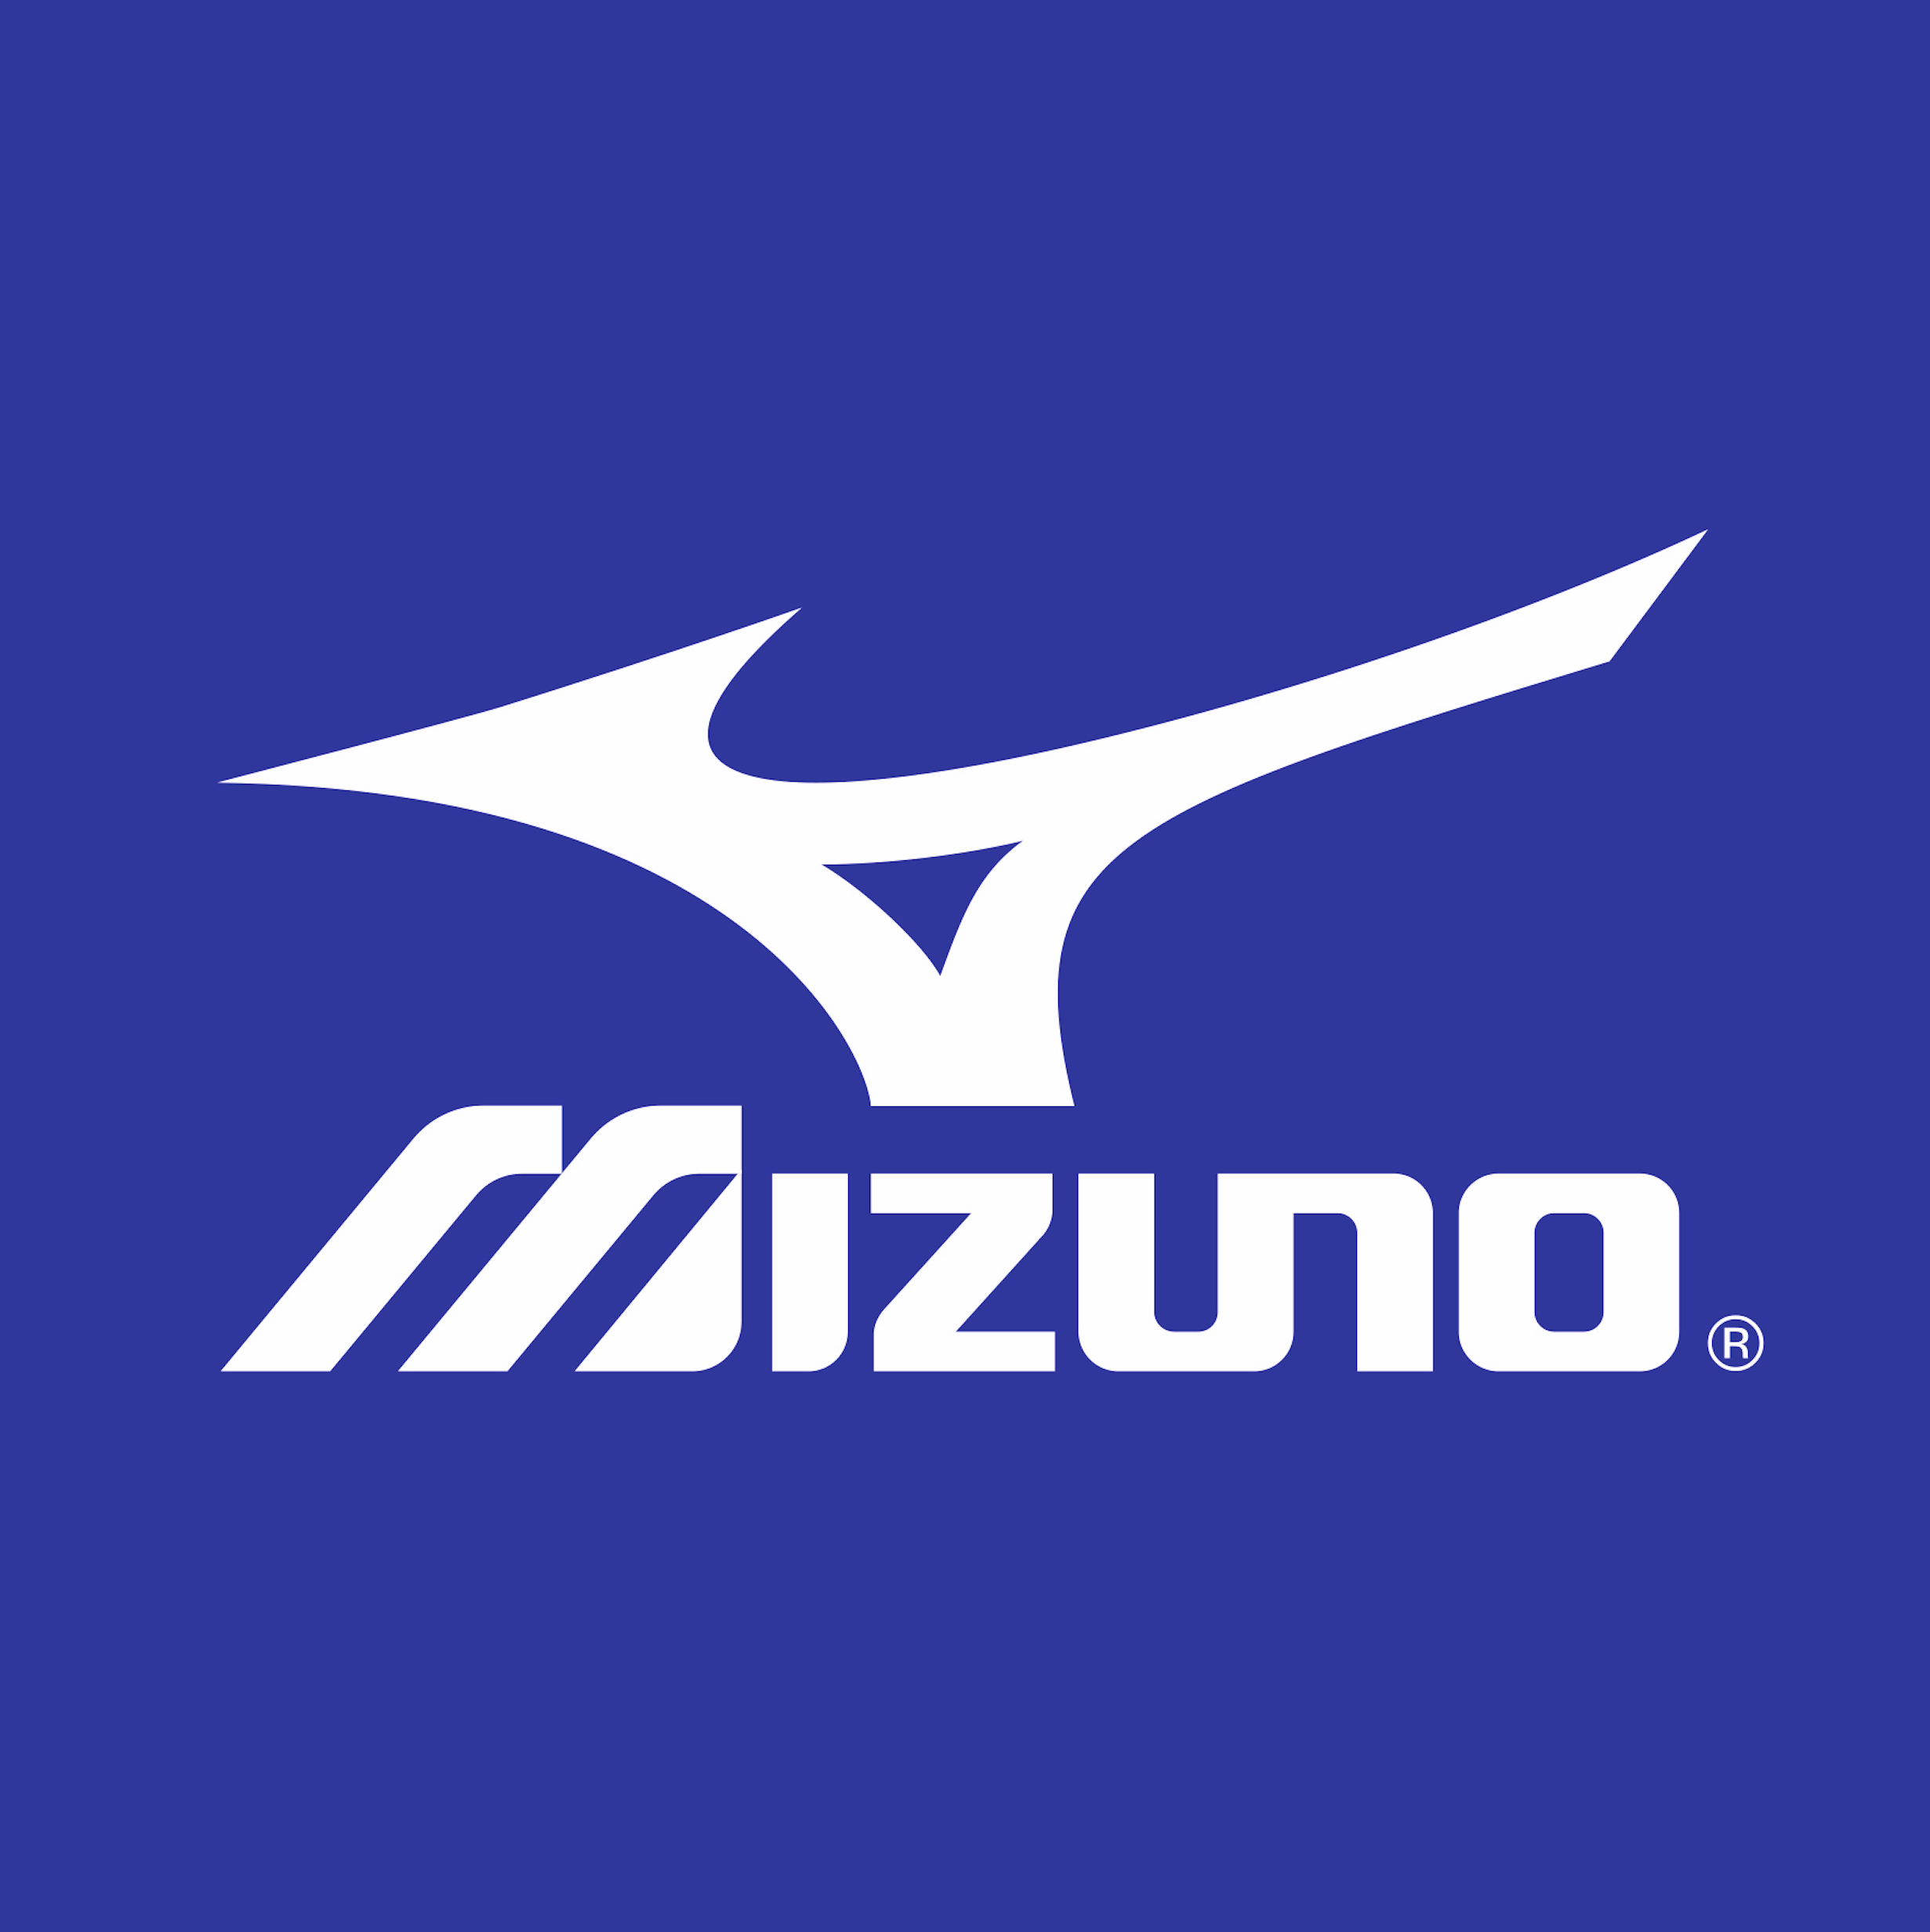 Buy from Mizuno with ZenMarket!